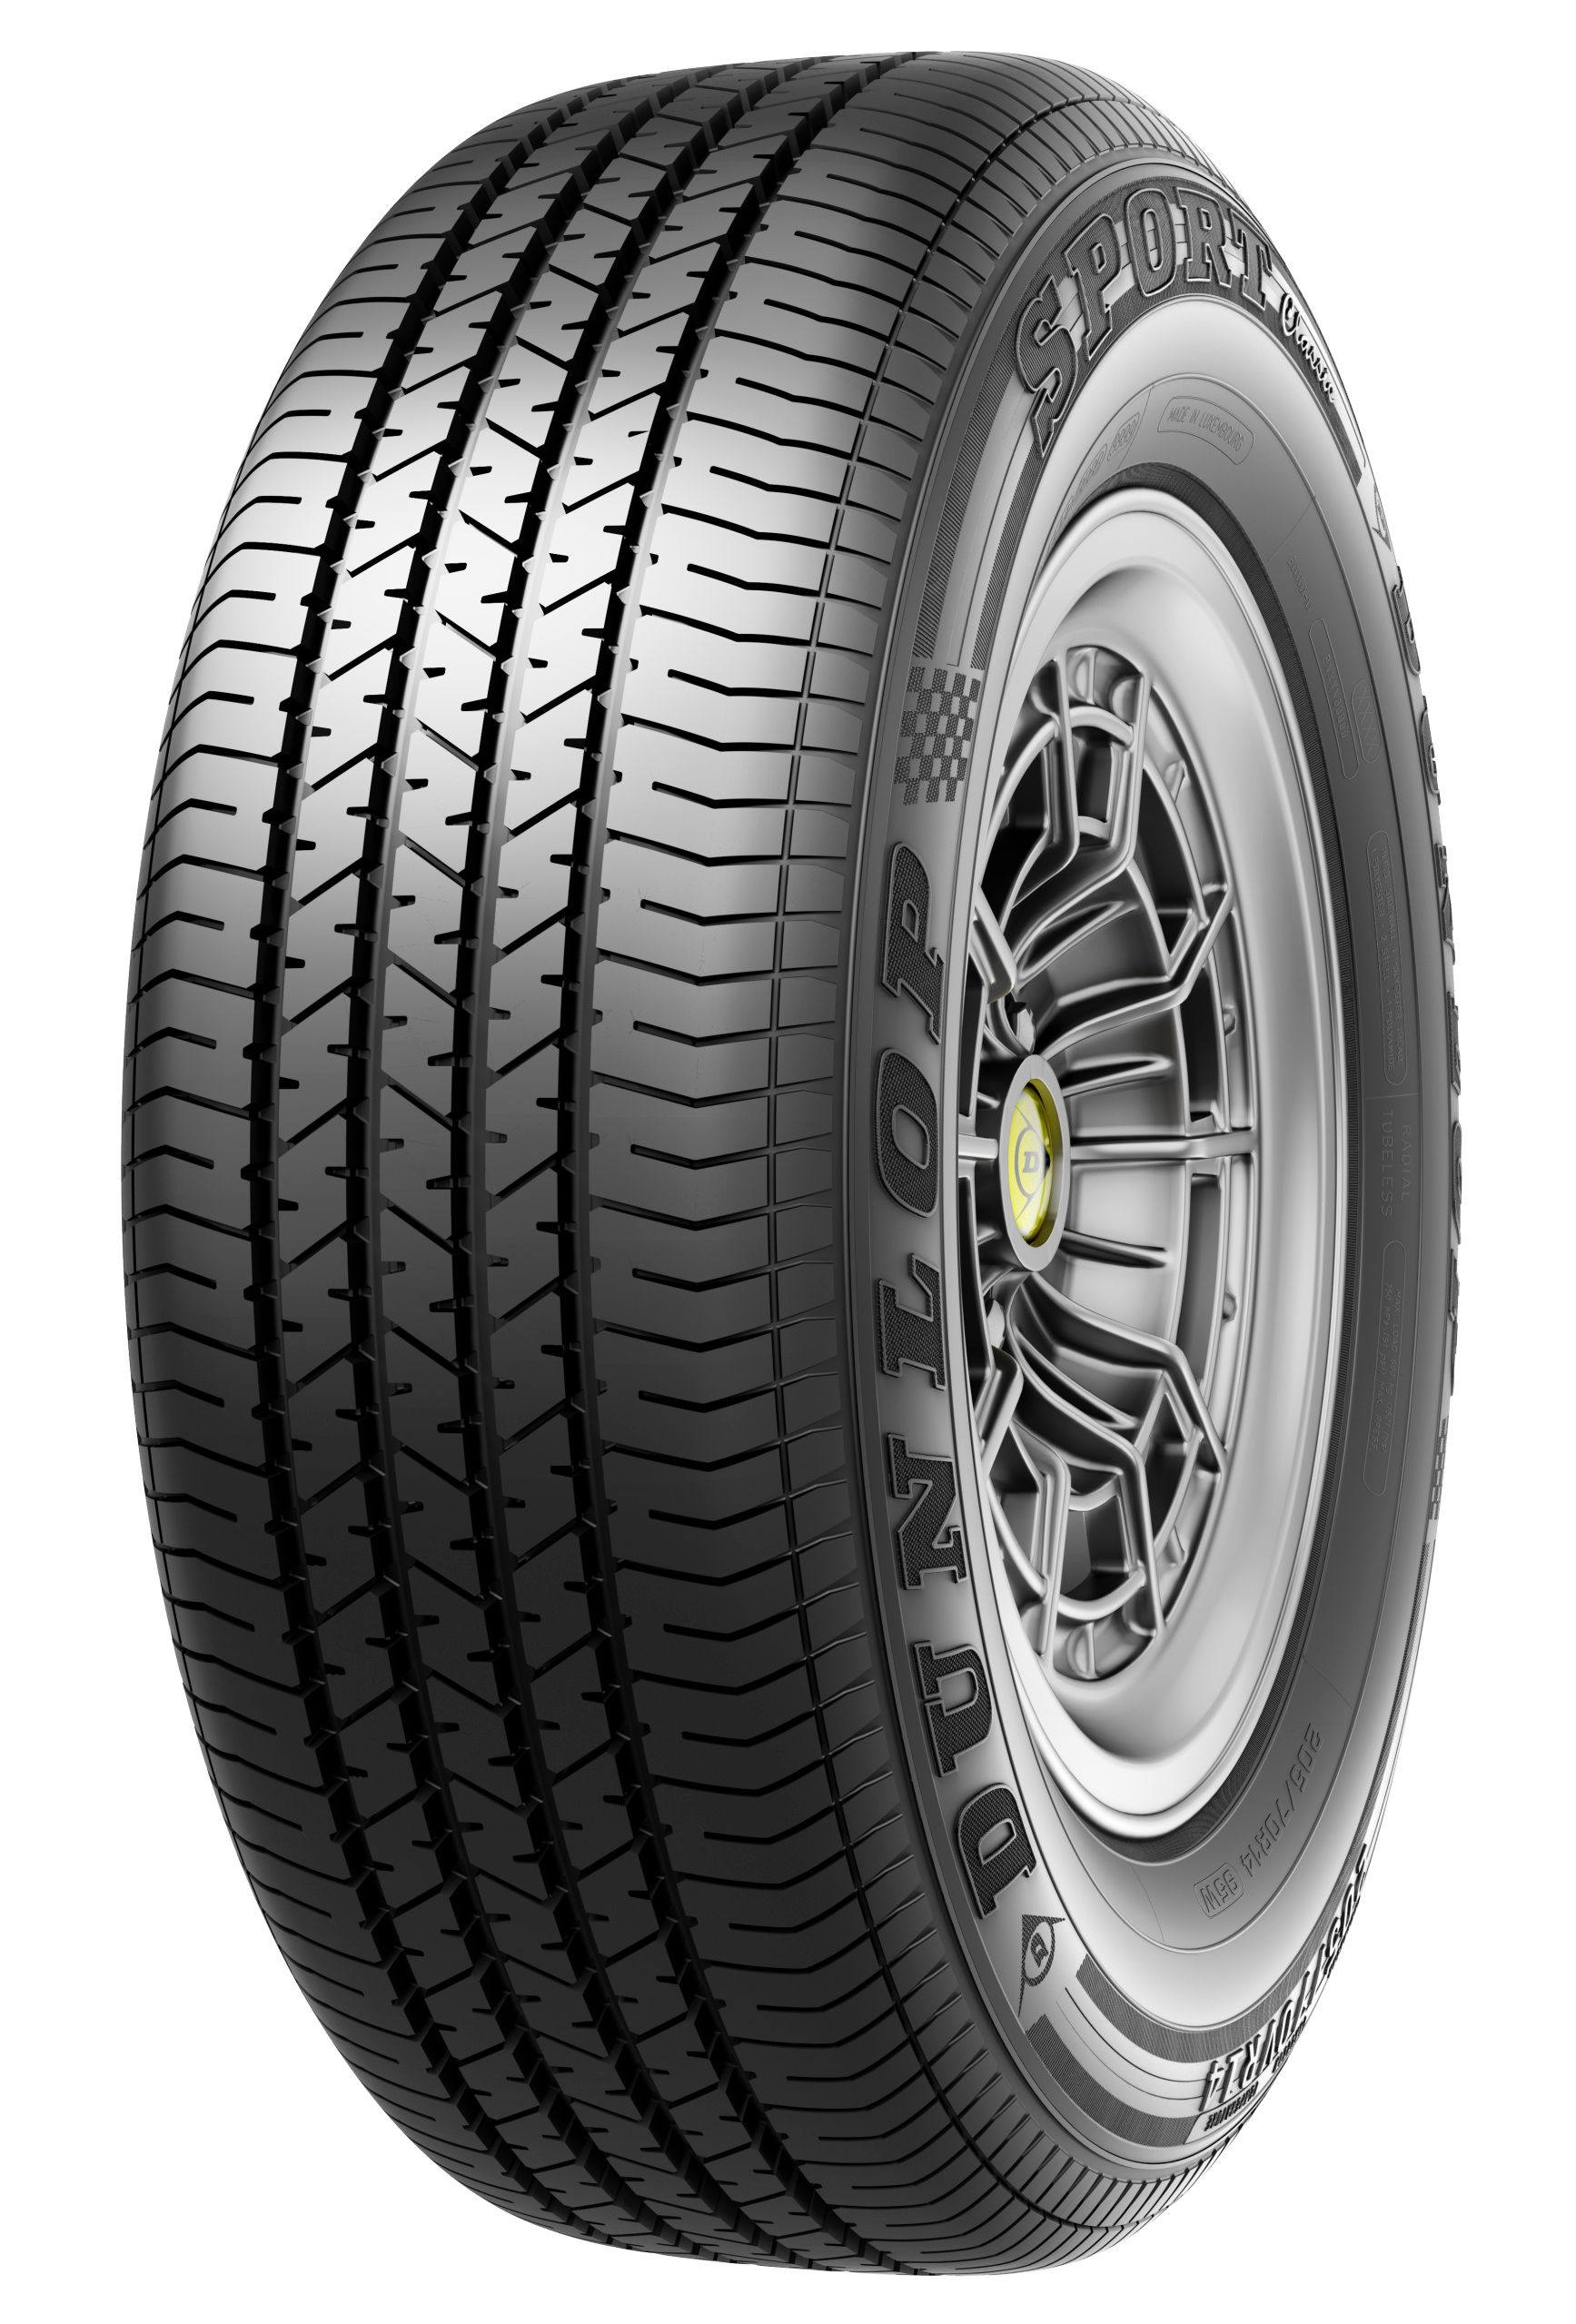 Dunlop_Sport_Classic-new-classic tyre-2017